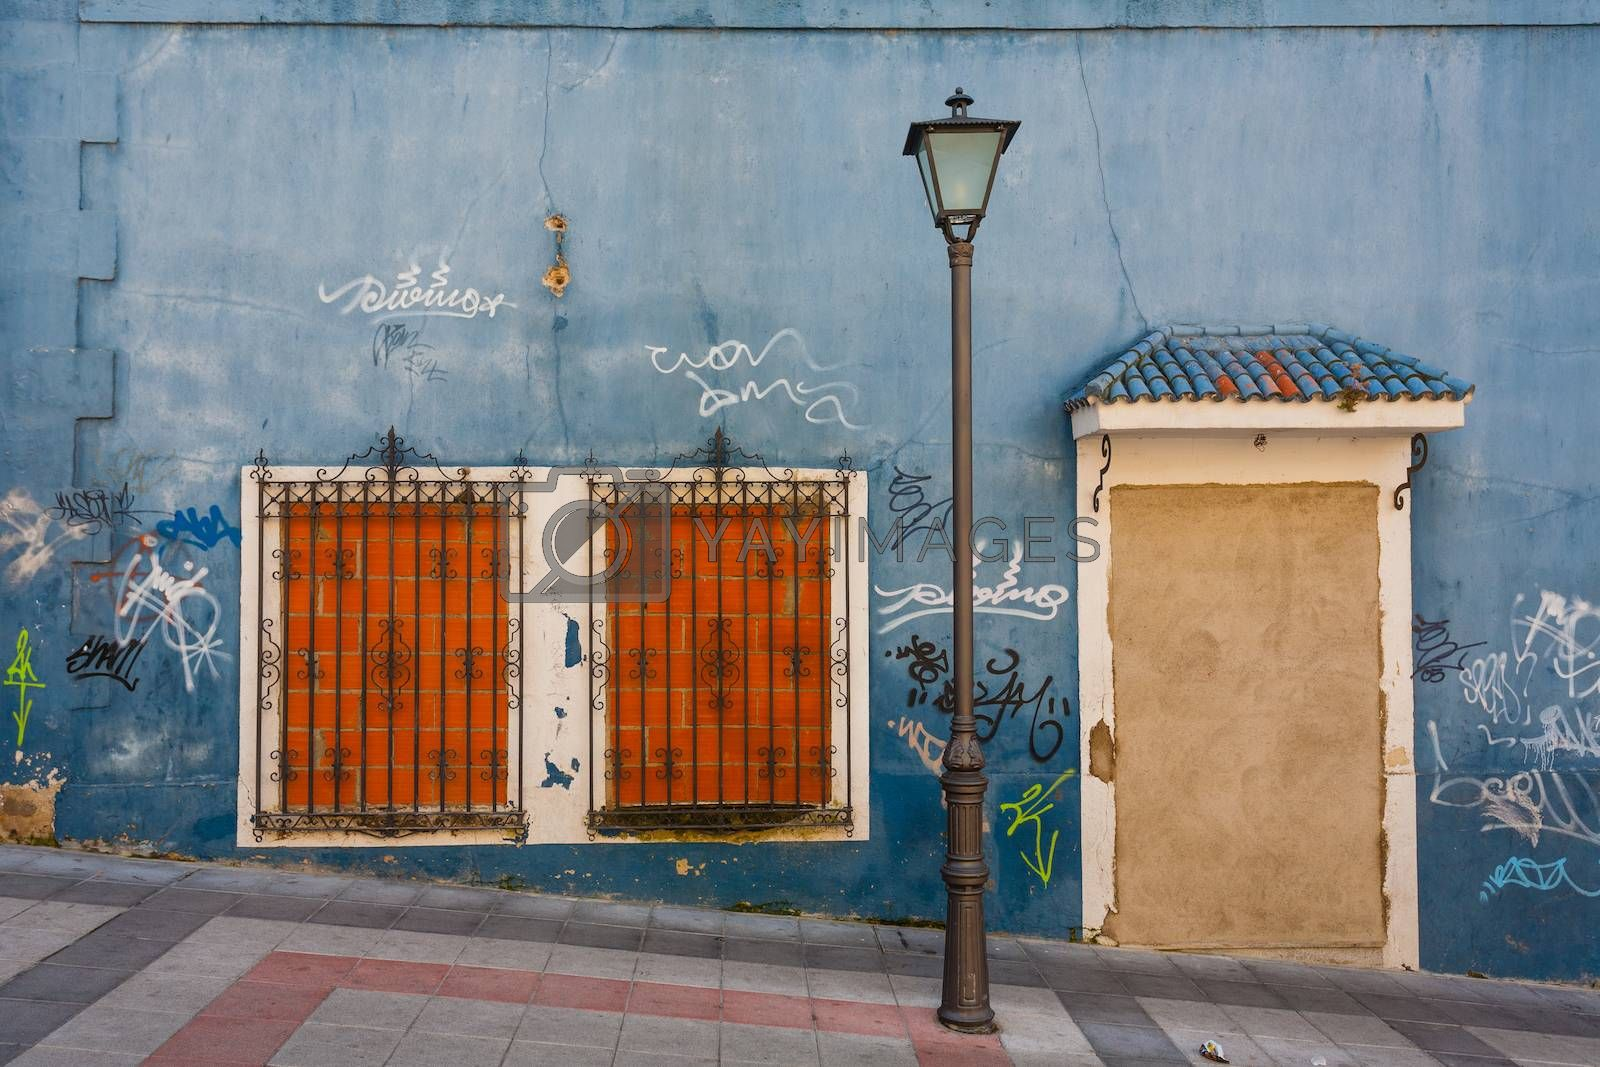 Curiosus image of a bricked up house with lamppost and graffitis in the street Salamance Spain